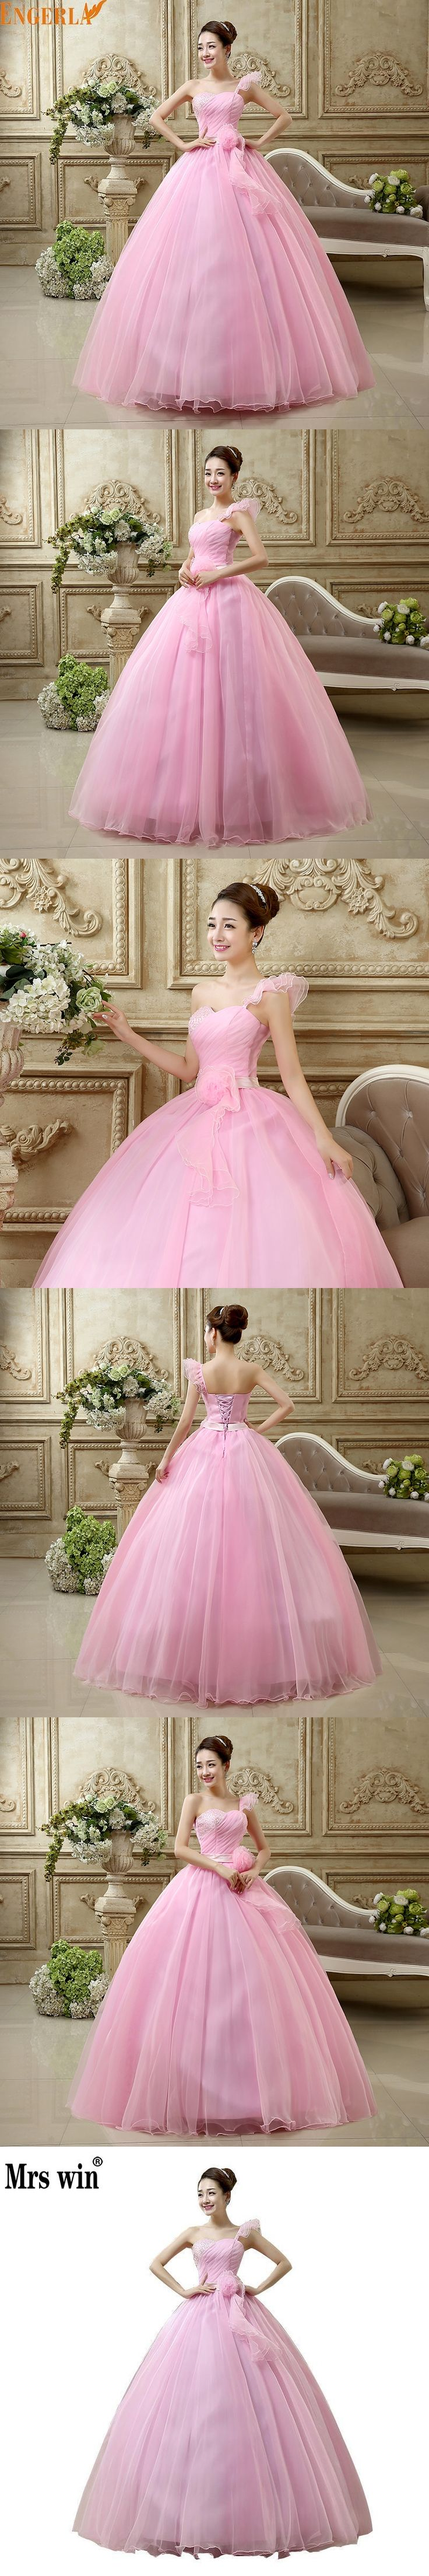 Quinceanera Dresses 2017 Sweet Flowers Crydtal Luxury Ball Gown Lace Gorgeous Debut Ball Gowns Junoesque Ball Gown For Prom